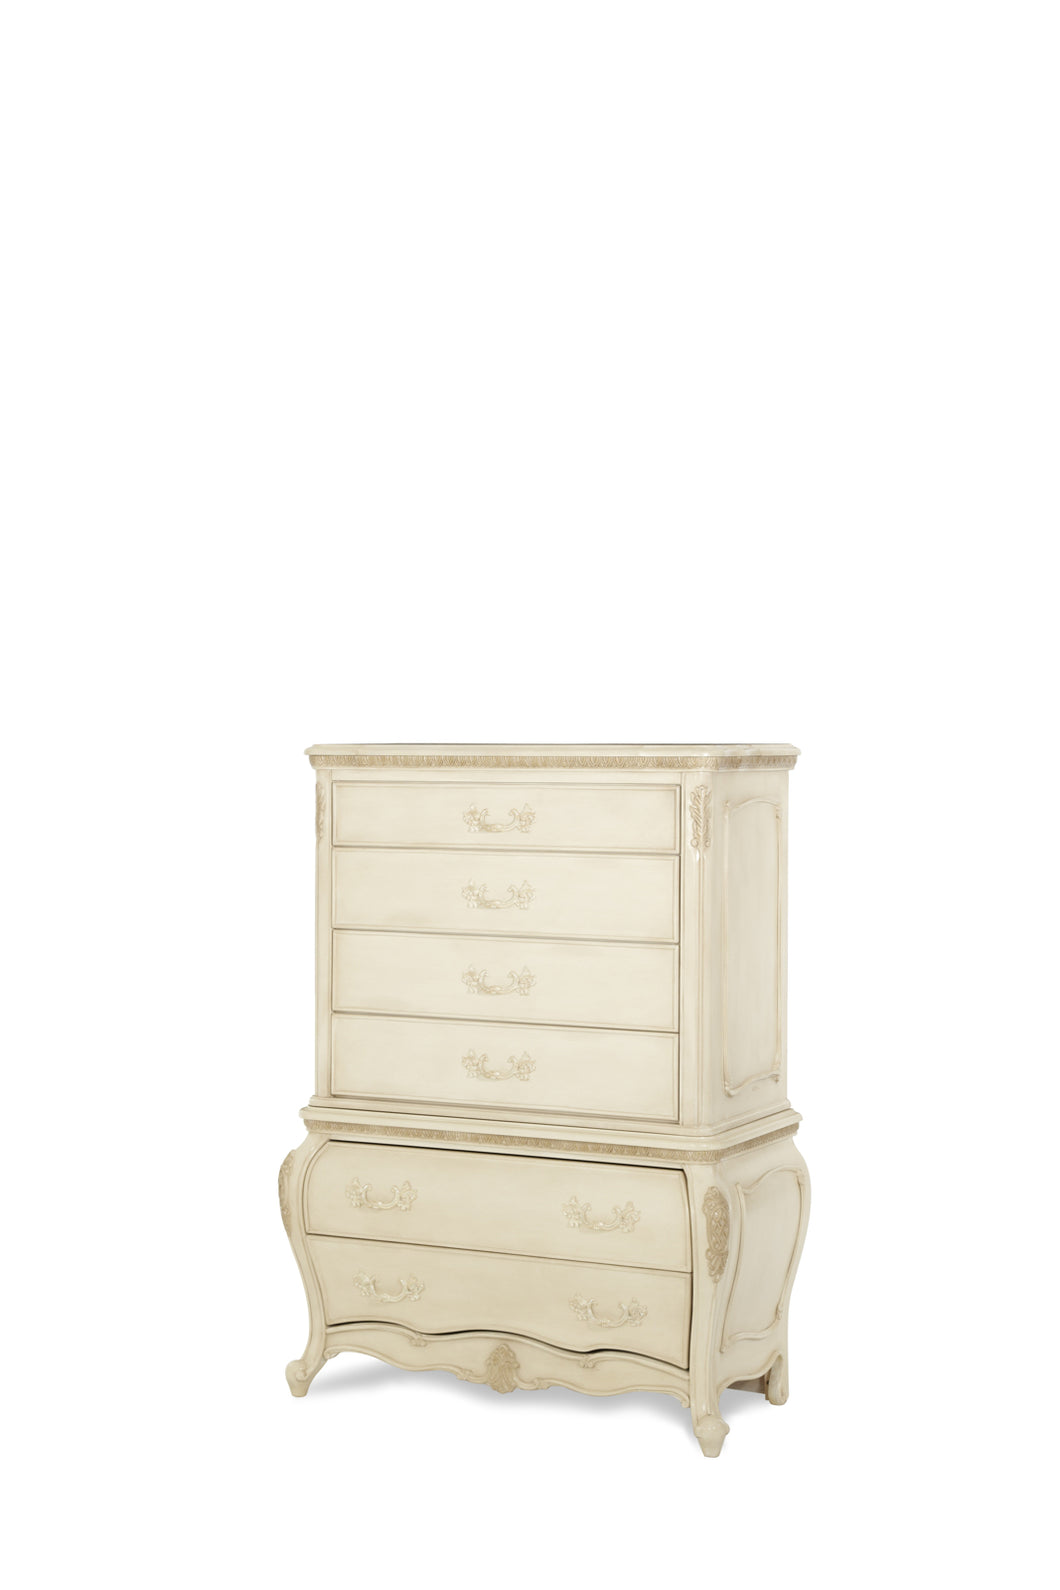 AICO Lavelle 6-Drawer Chest in Blanc White 54070-04 image